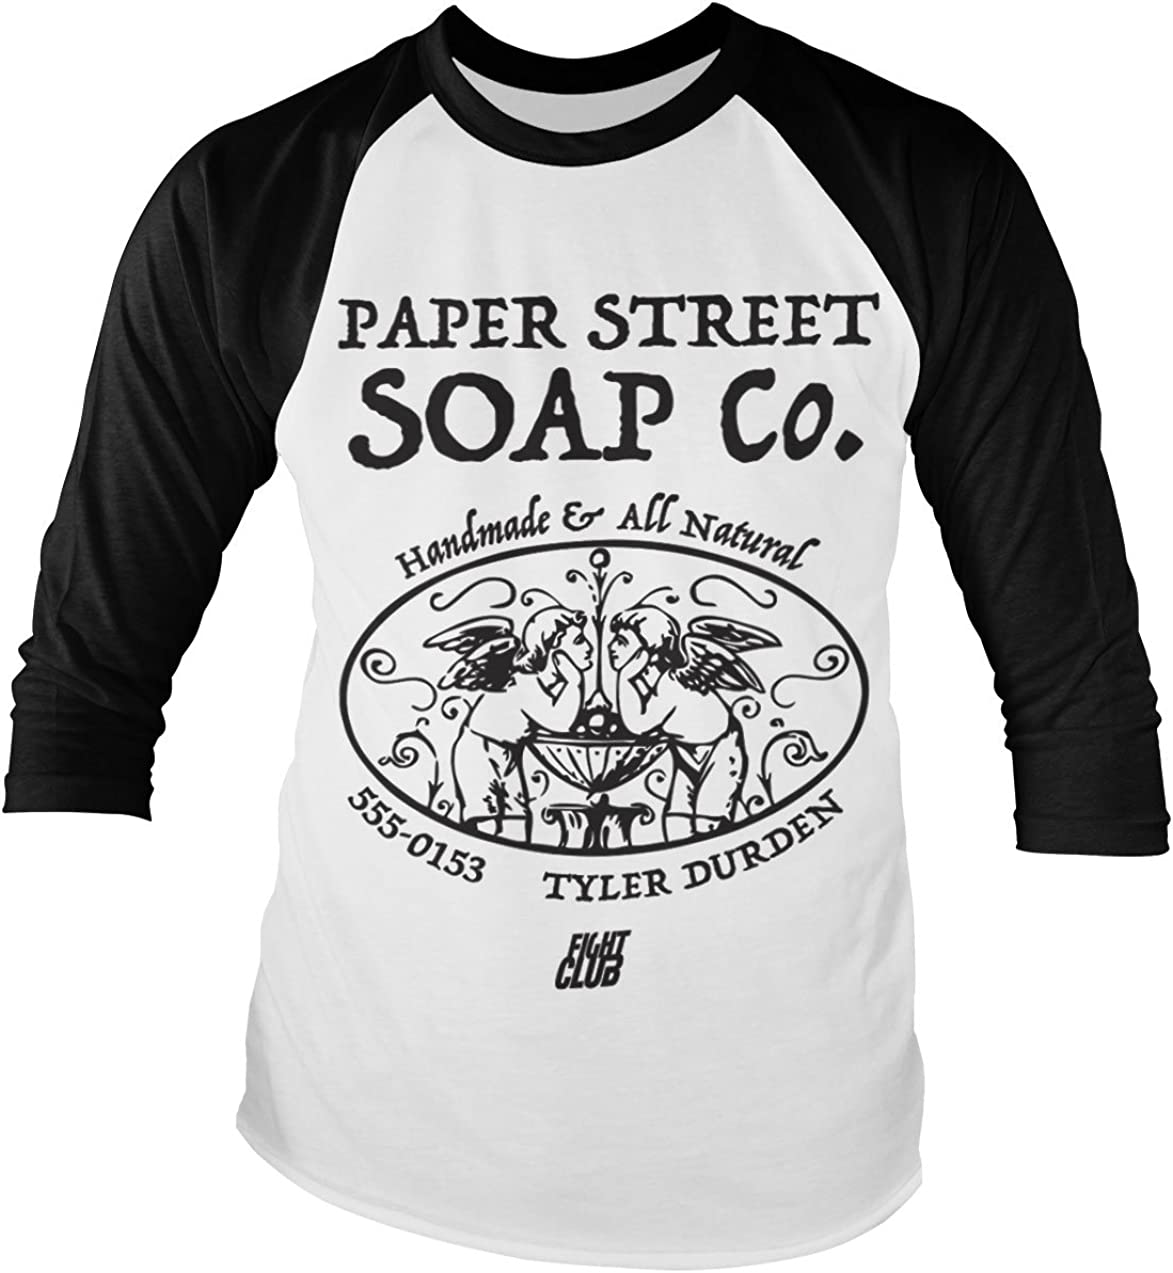 Paper Street Soap Company Men/'s T-Shirt S-XXL Officially Licensed Fight Club